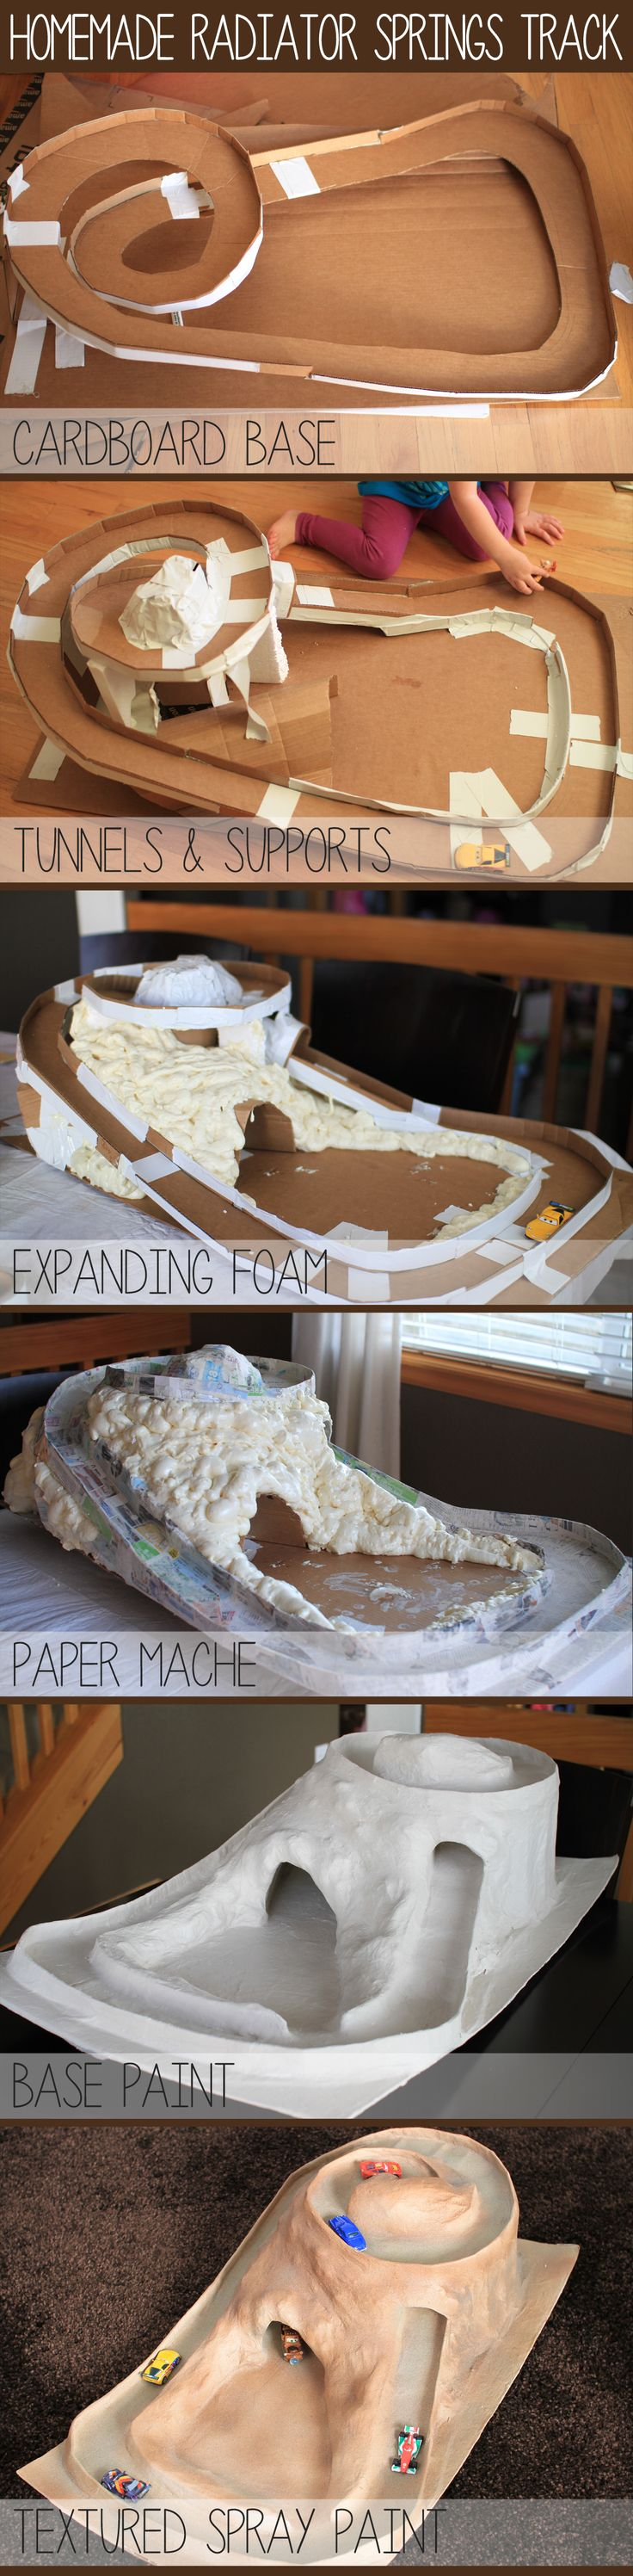 DIY: A spiral track around a mountain with a tunnel at the top. A little cardboard, expanding foam, paper mache, paint